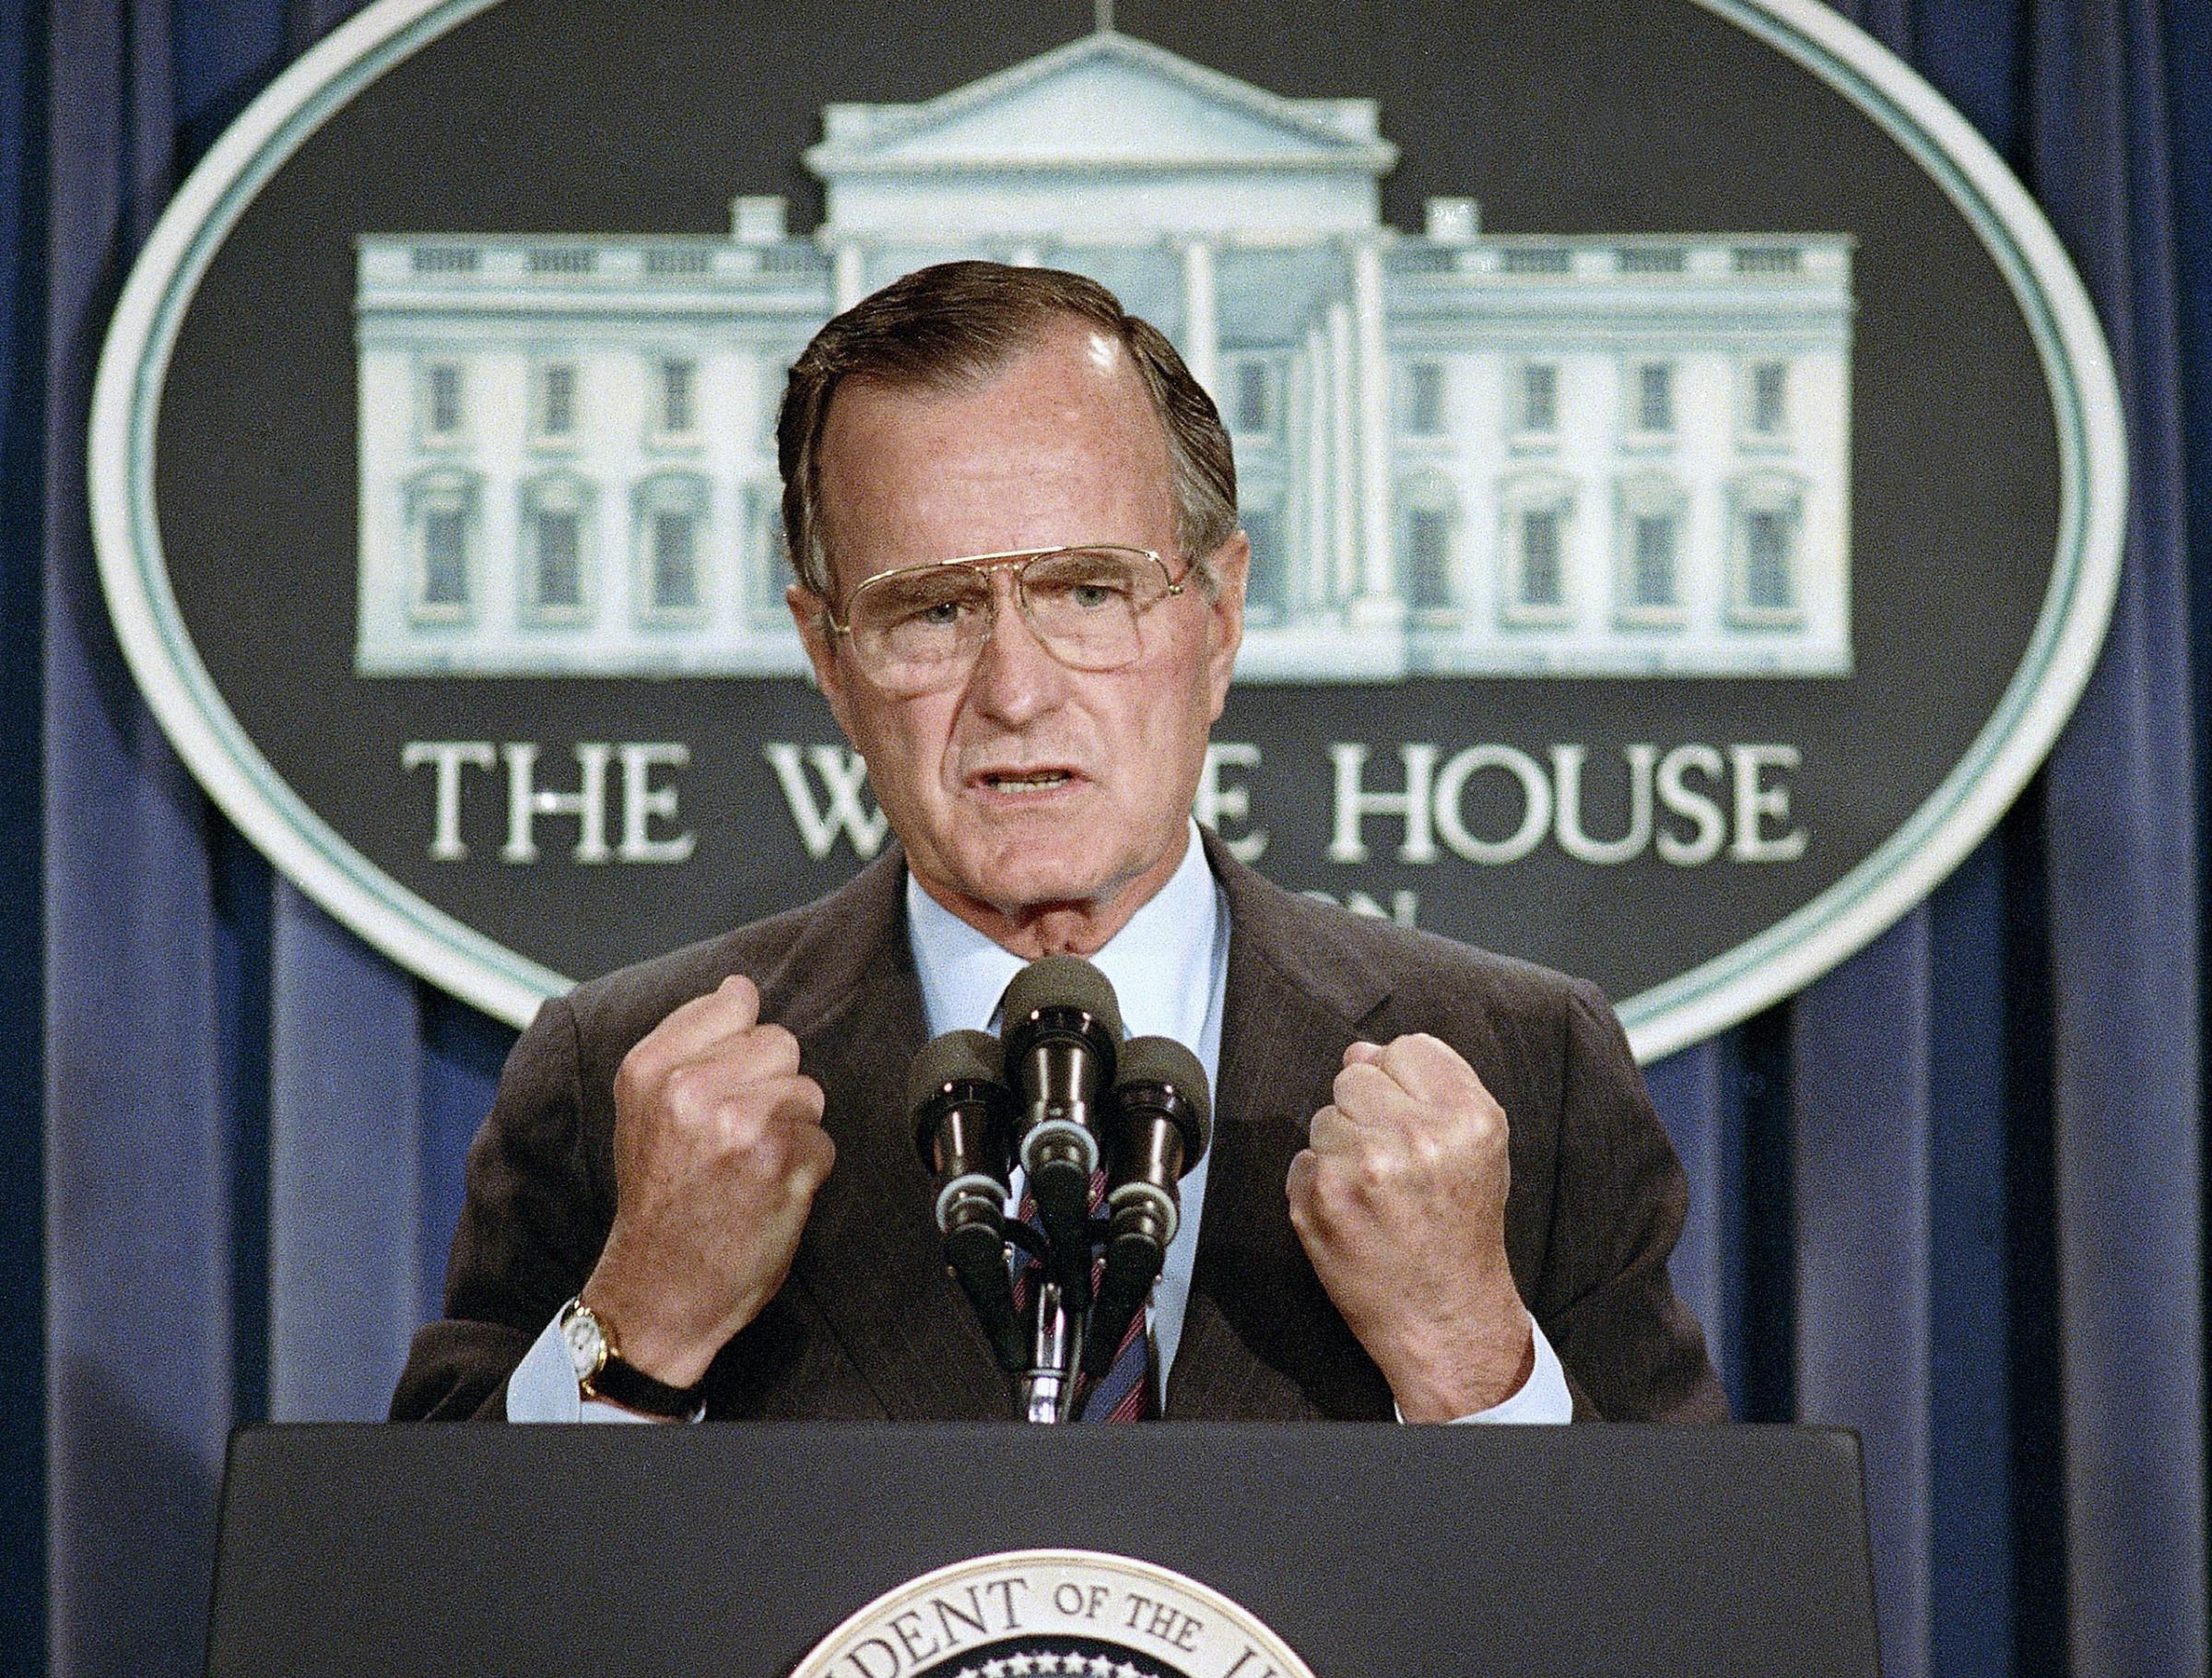 FILE - In this June 5, 1989 file photo, U.S. President George H.W. Bush holds a news conference at the White House in Washington where he condemned the Chinese crackdown on pro-democracy demonstrators in Beijing's Tiananmen Square. Bush died at the a